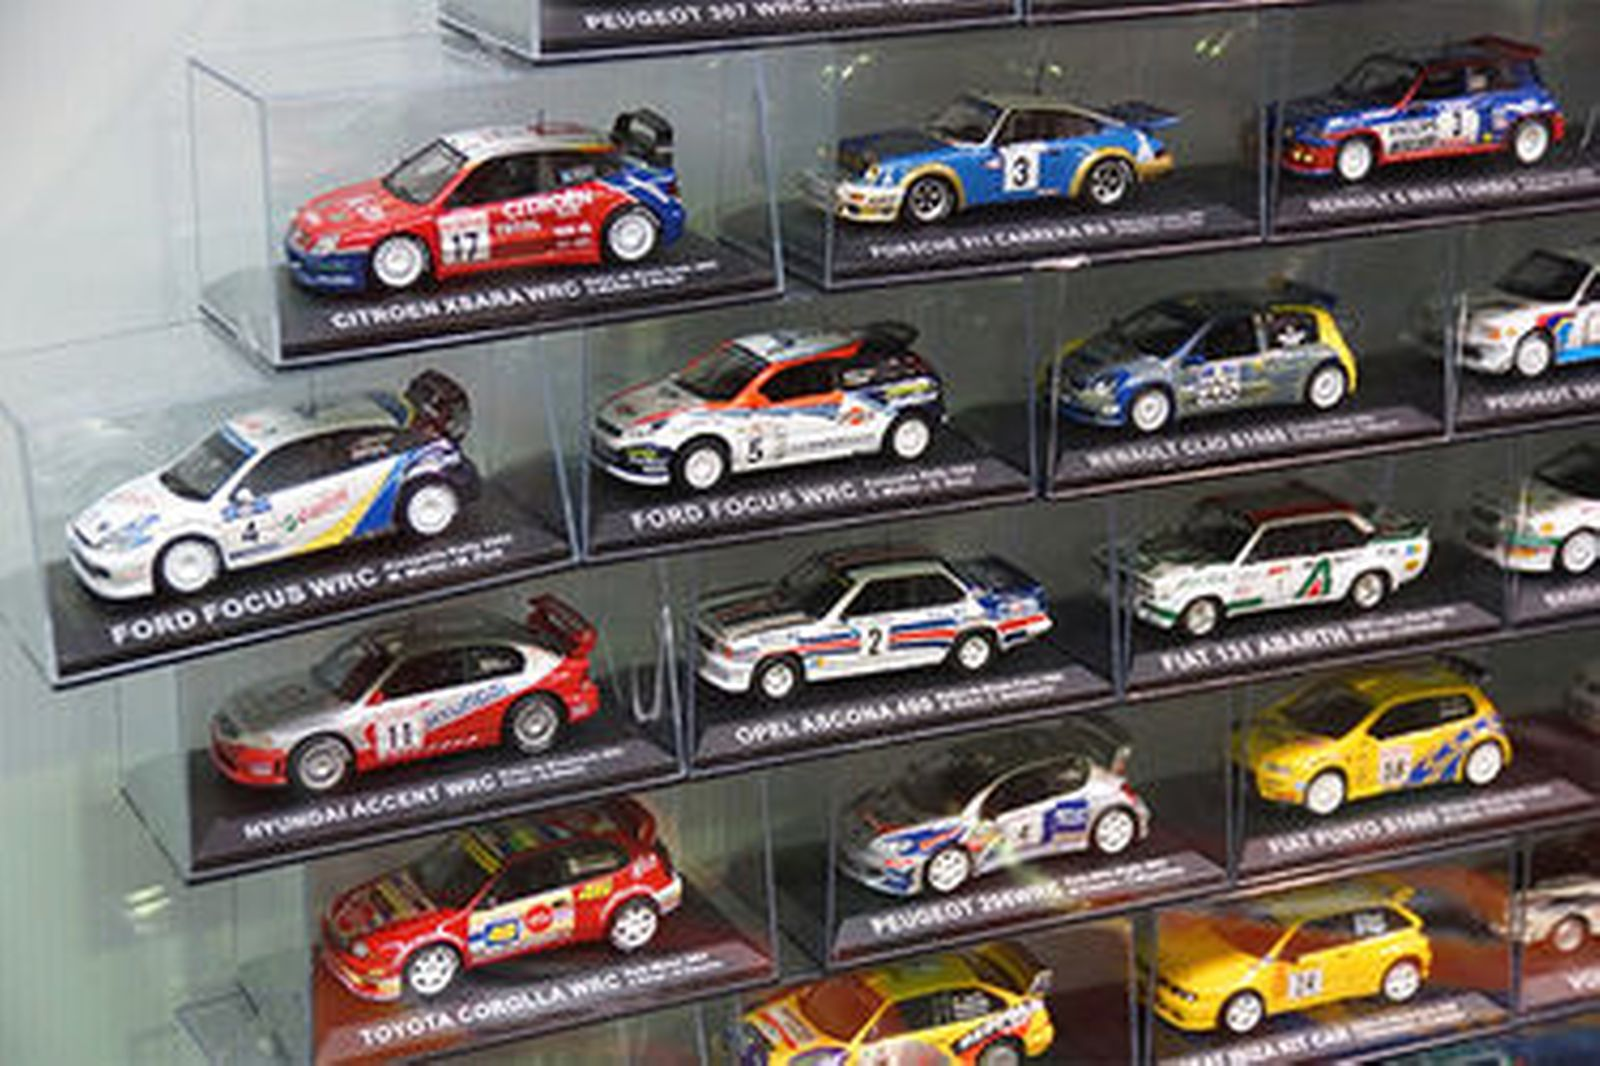 Excellent Rally Car Models Photos - Classic Cars Ideas - boiq.info